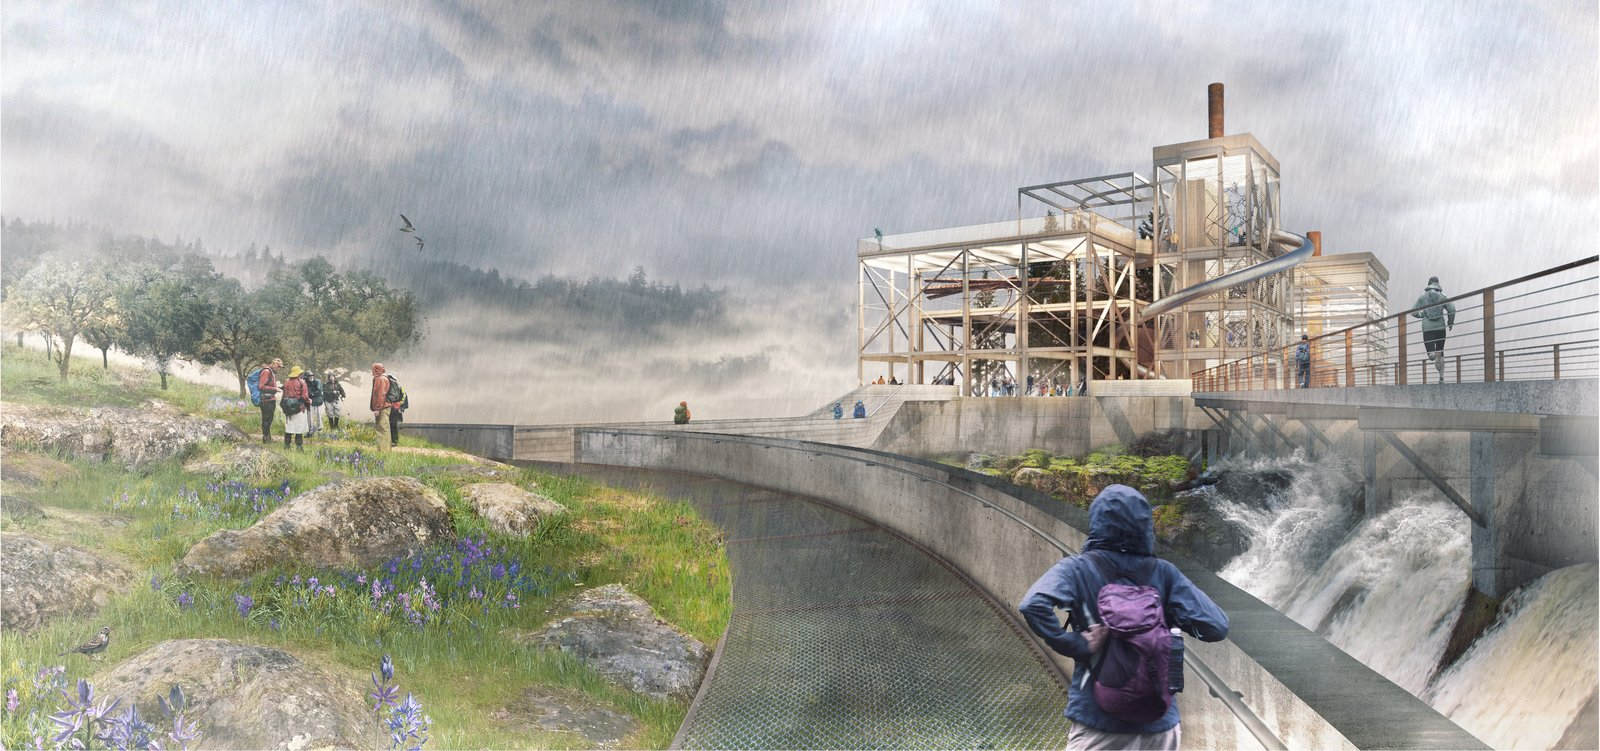 Photo 1 of 8 in Snøhetta Designs a New Riverwalk That Will Bring Public Access to Oregon City's Willamette Falls